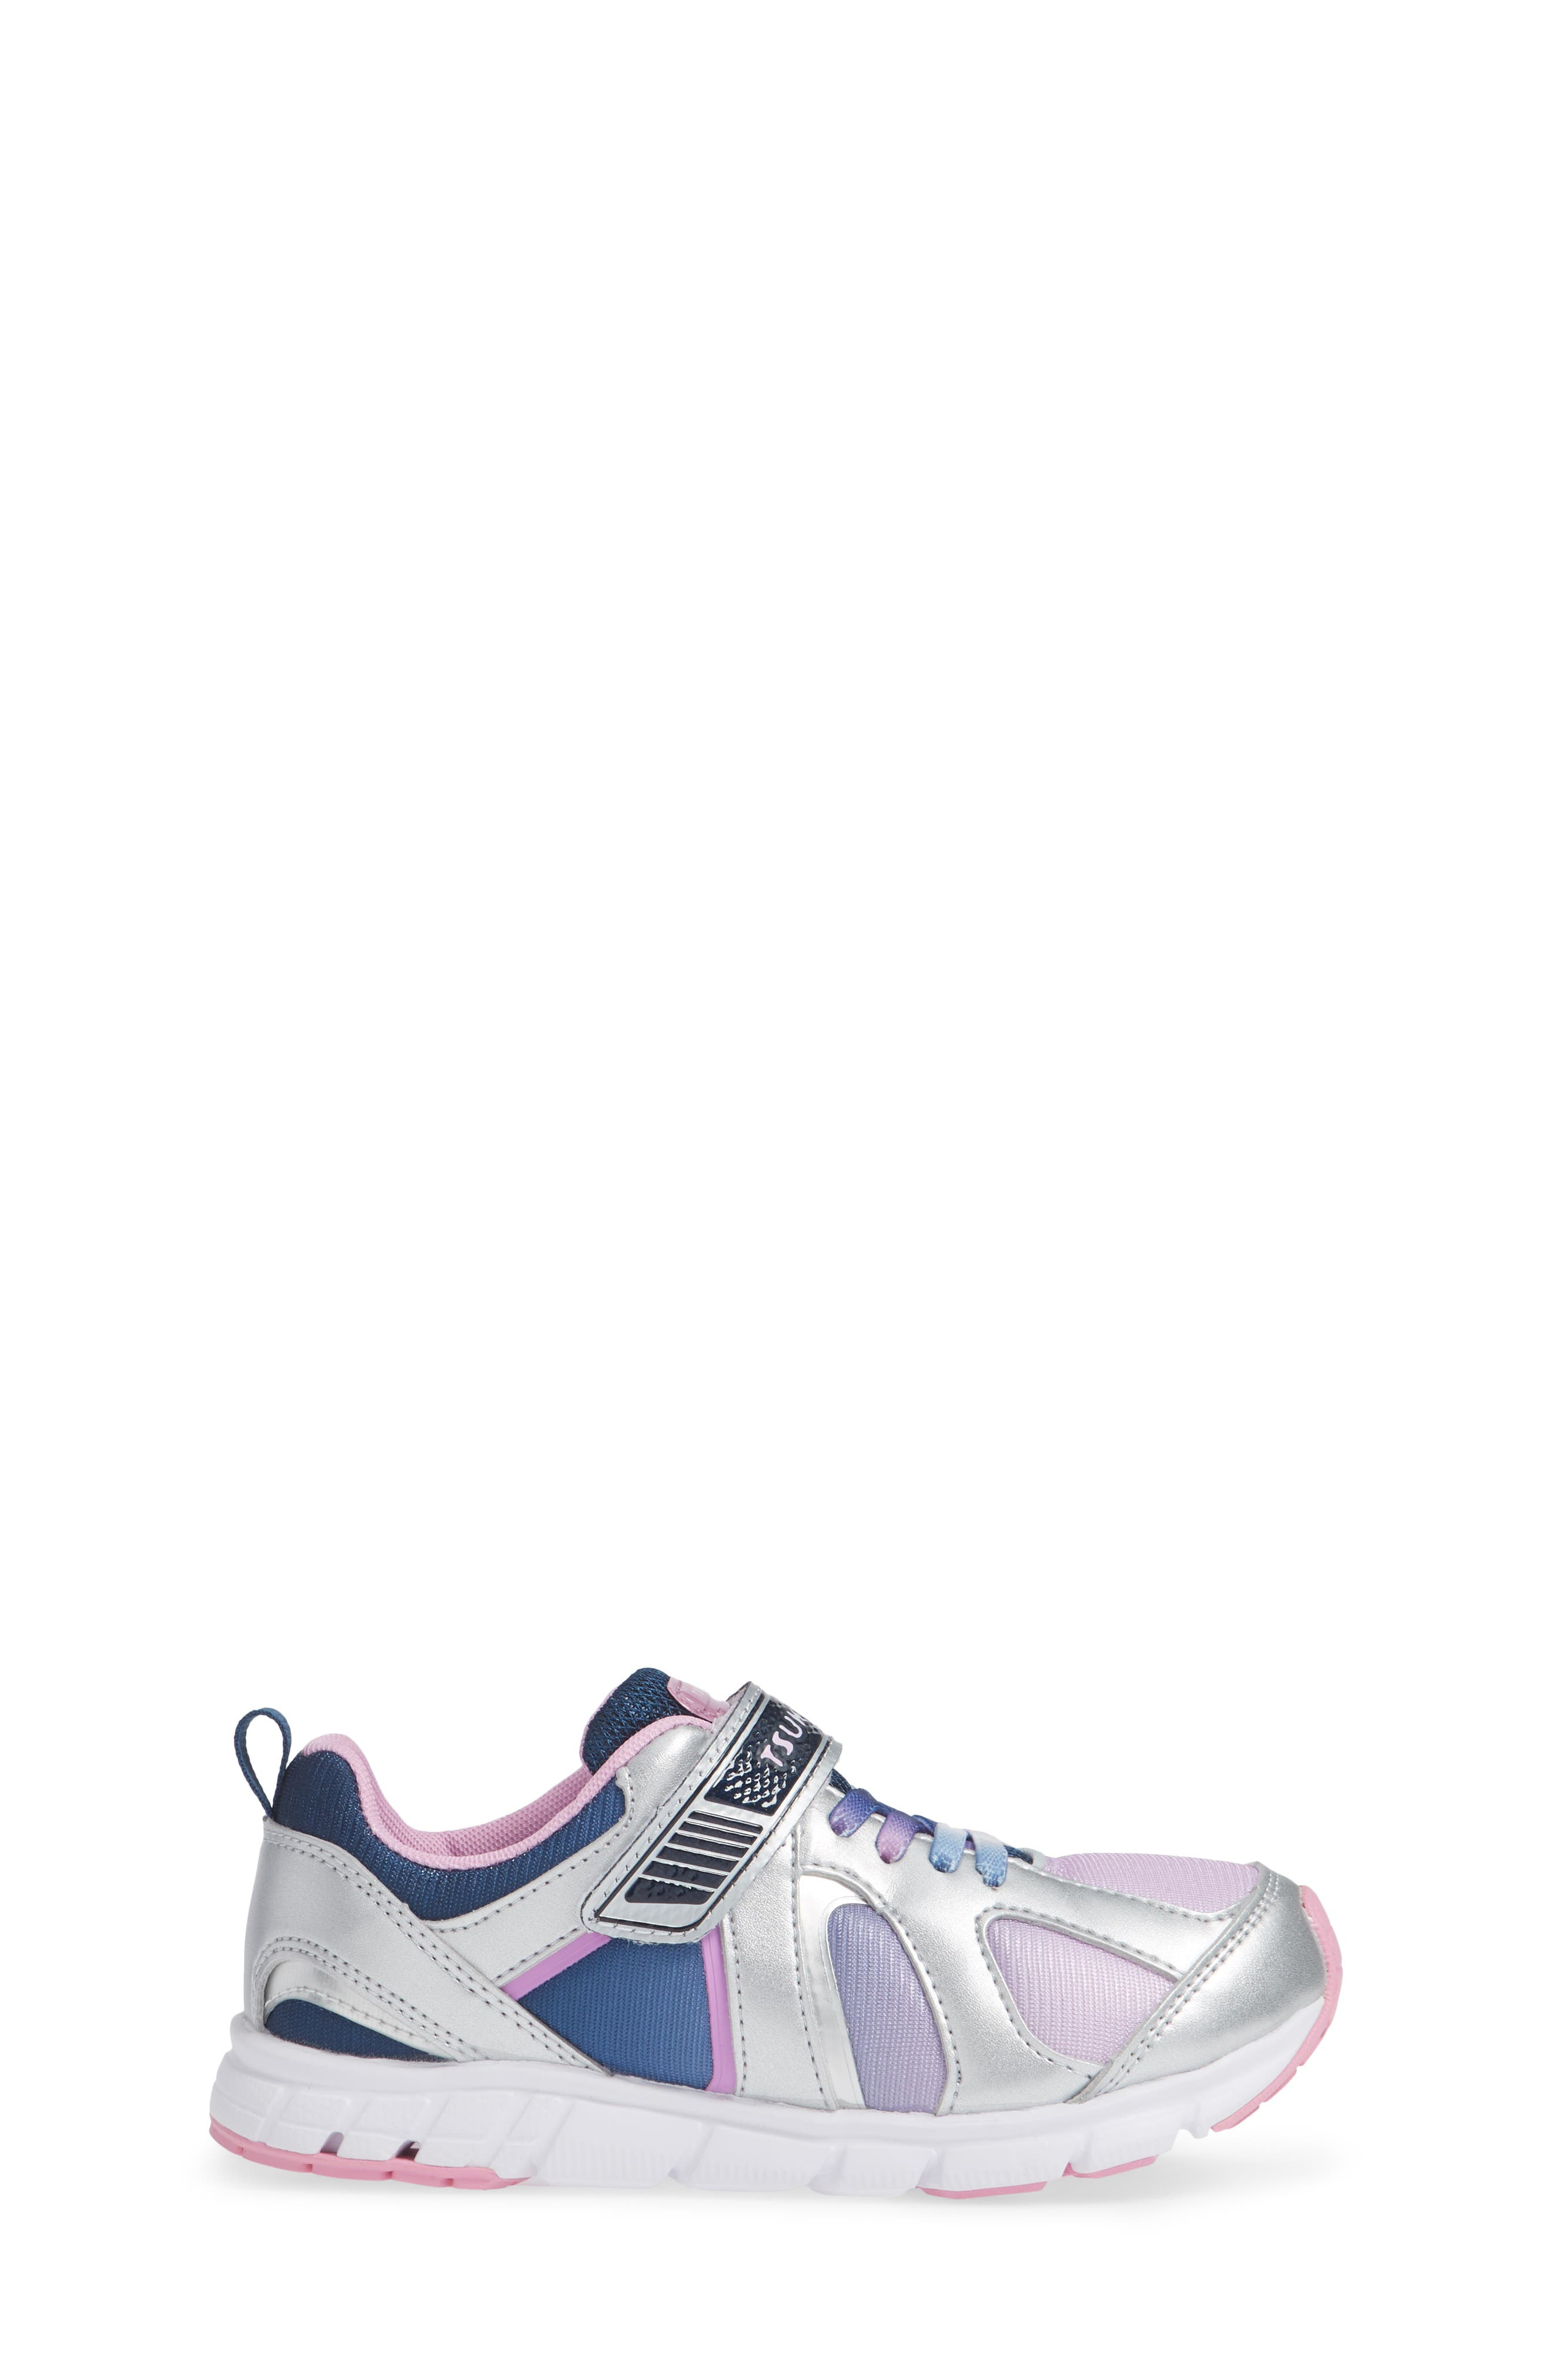 Rainbow Washable Sneaker,                             Alternate thumbnail 3, color,                             SILVER/ NAVY